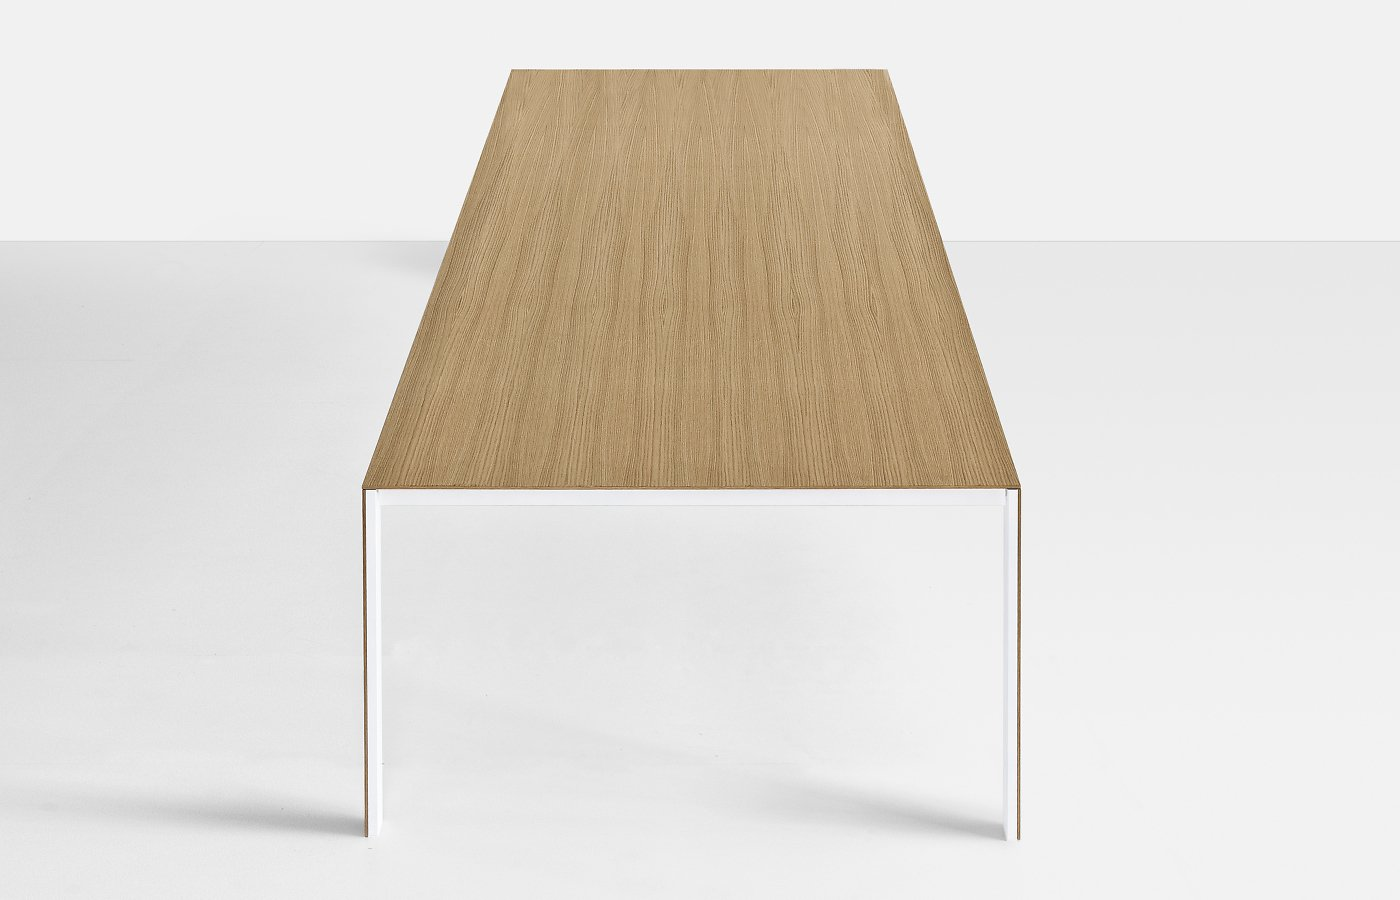 Thin-K Wood Table dining from Kristalia, designed by Luciano Bertoncini